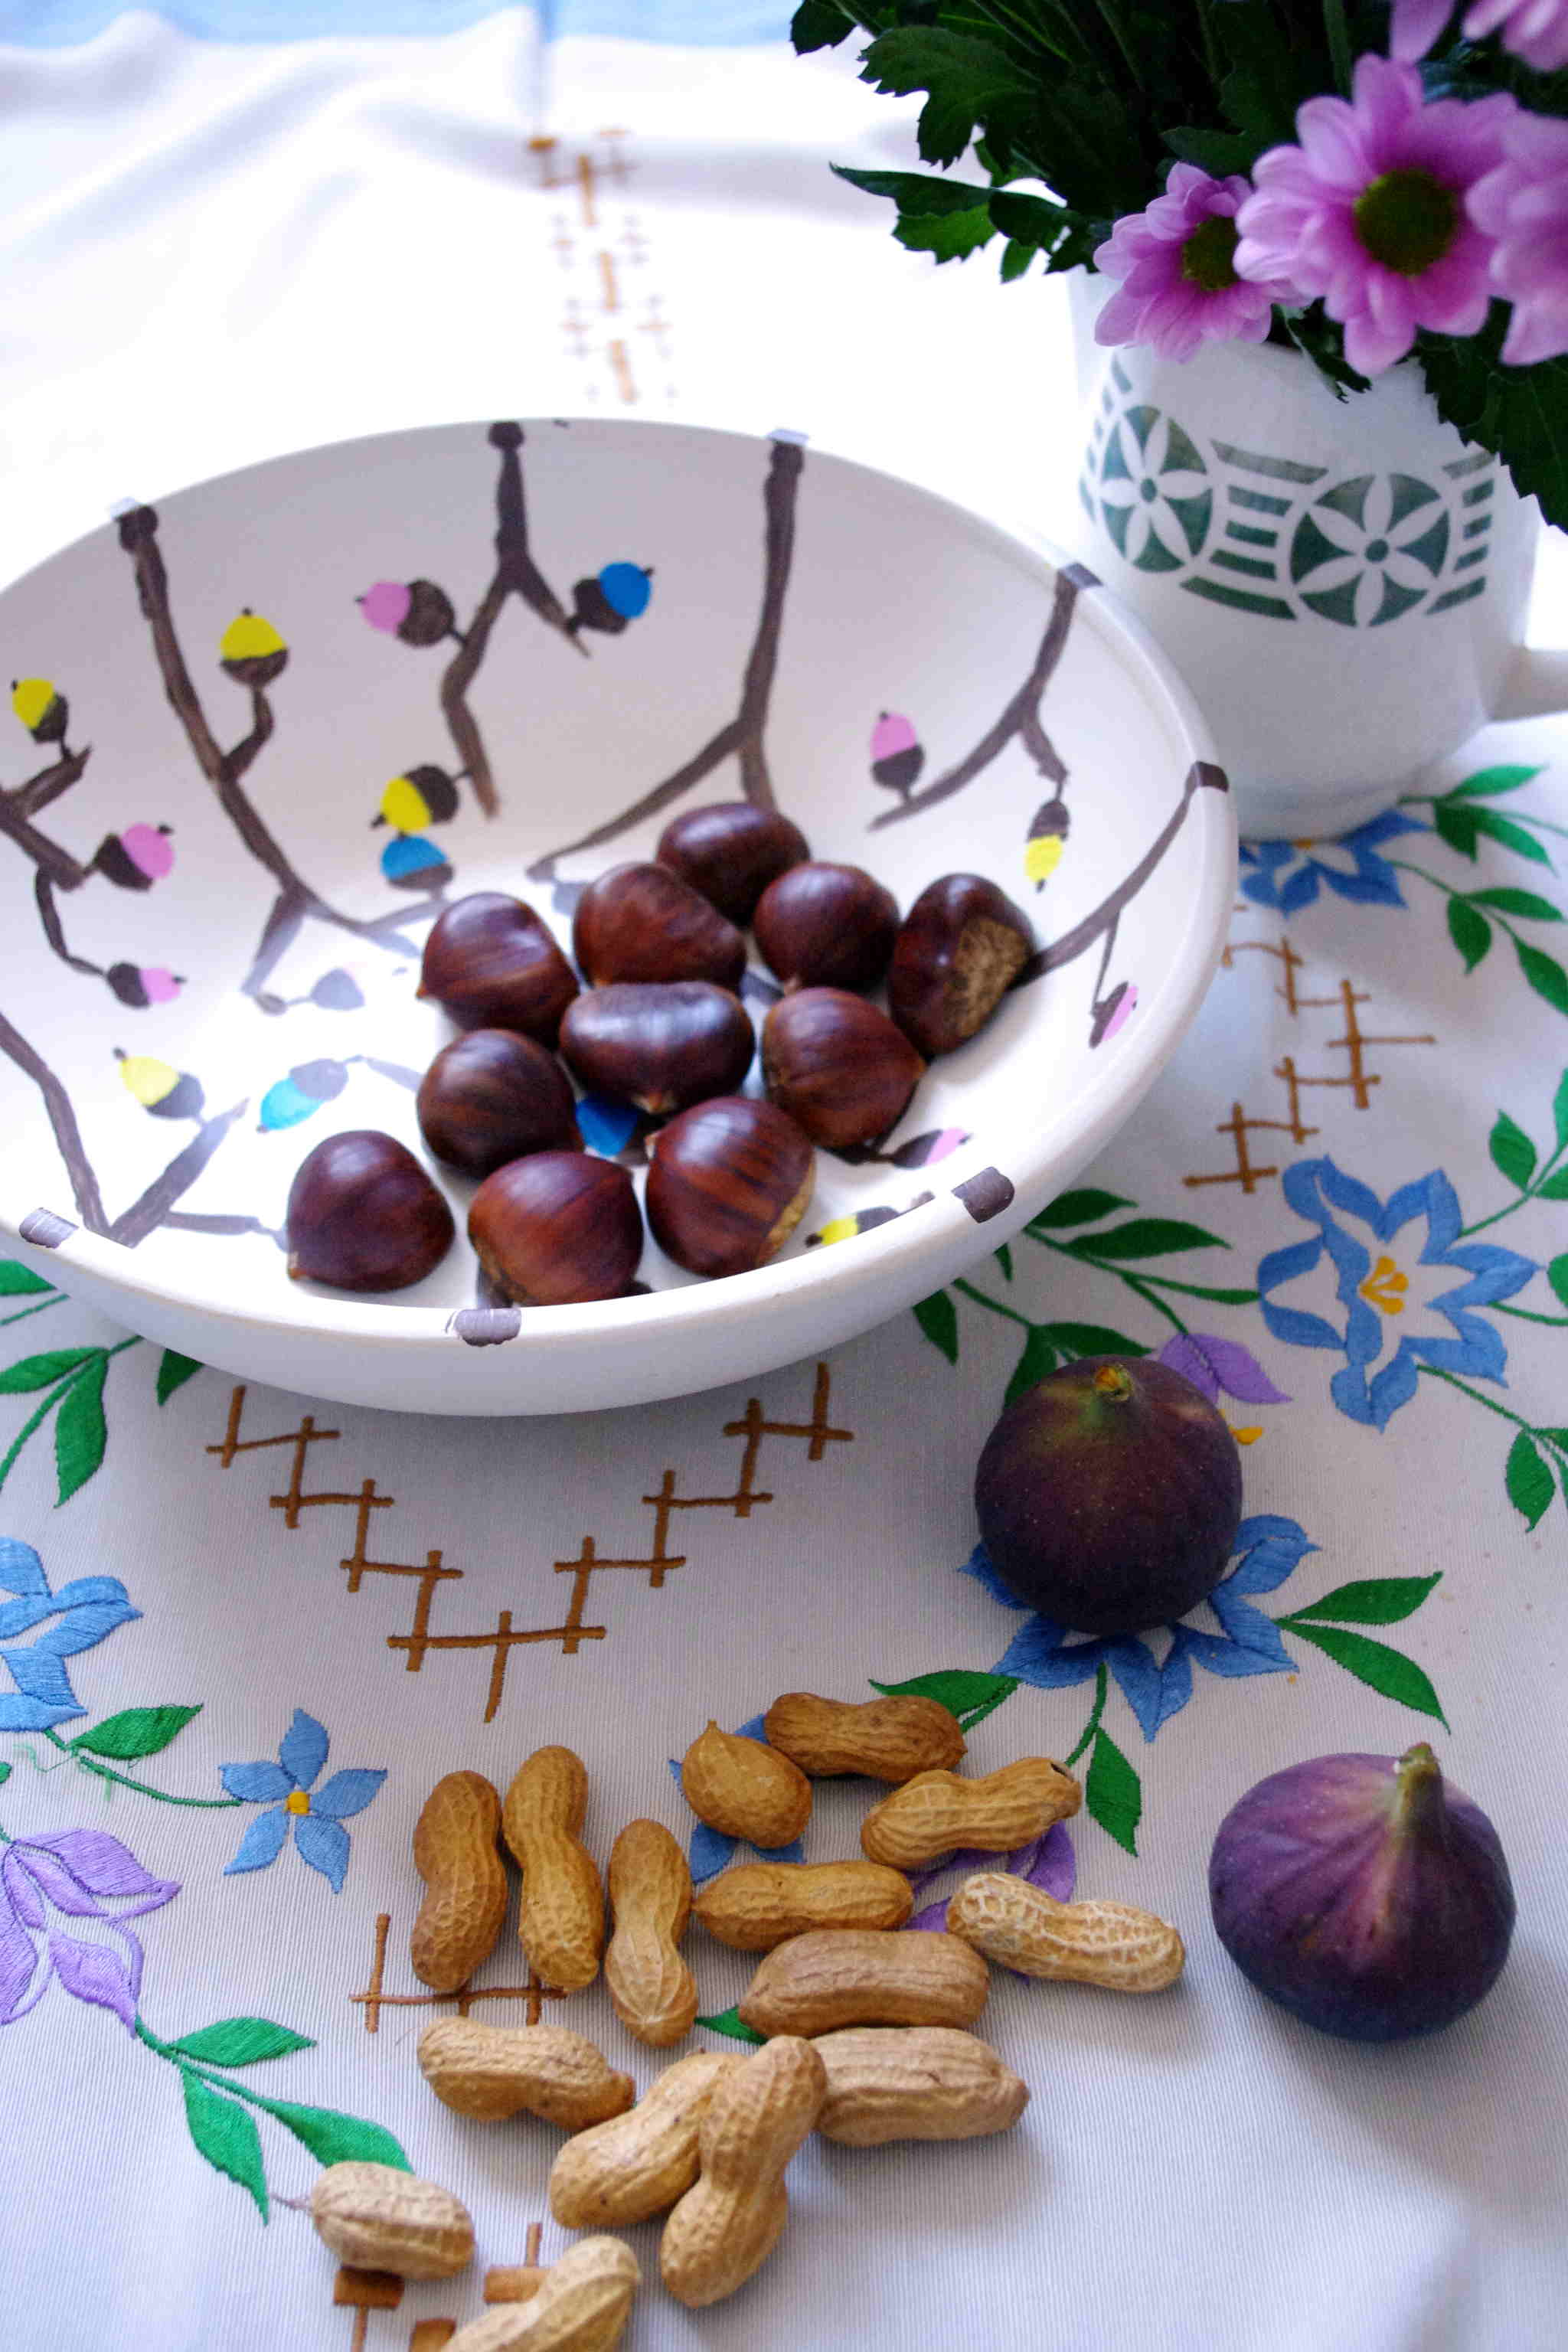 Herbstdeko mit Eicheln in Farbe – fall decoration with acorns in color